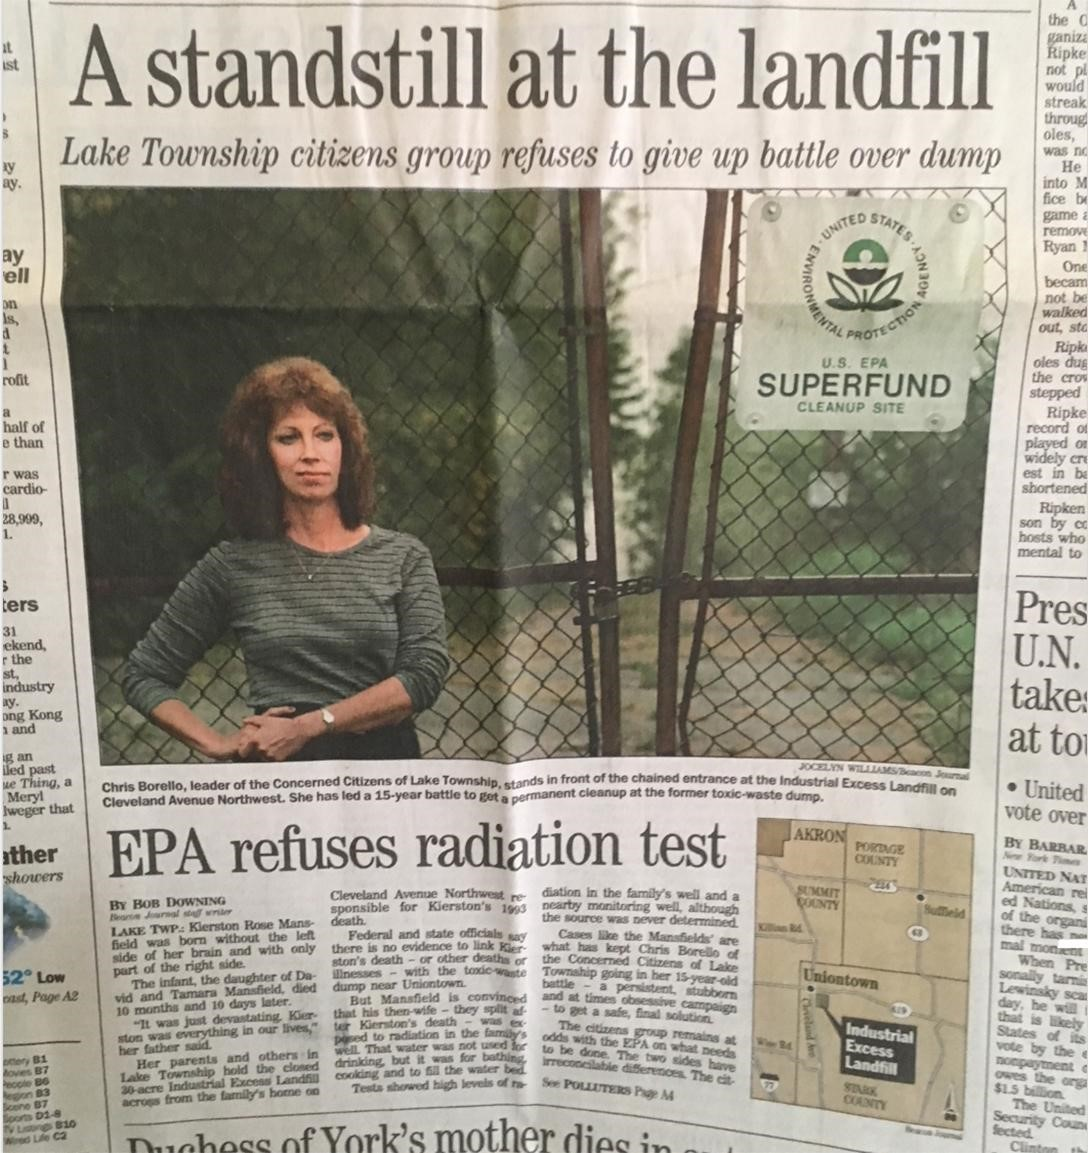 Chris-Borello-co-founder-of-Concerned-Citizens-of-Lake-Township-stands-at-Industrial-Excess-Landfill-chained-gate, 2020 hindsight brings corrupted radiation testing into focus at the EPA – Part 1, National News & Views